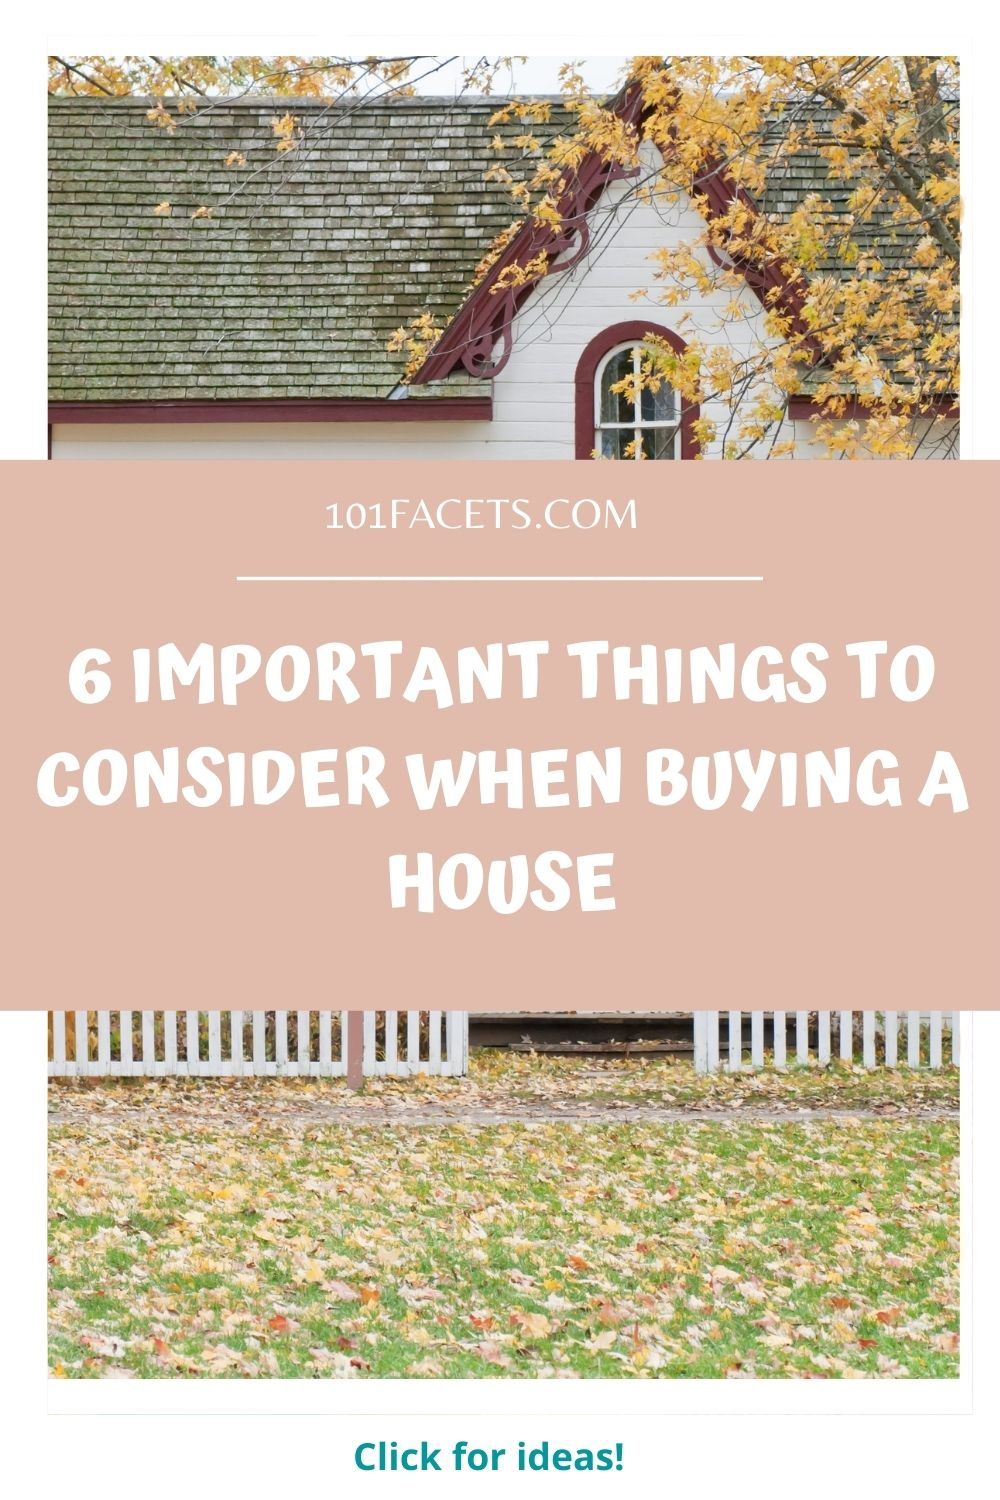 Important Things to Consider When Buying a House